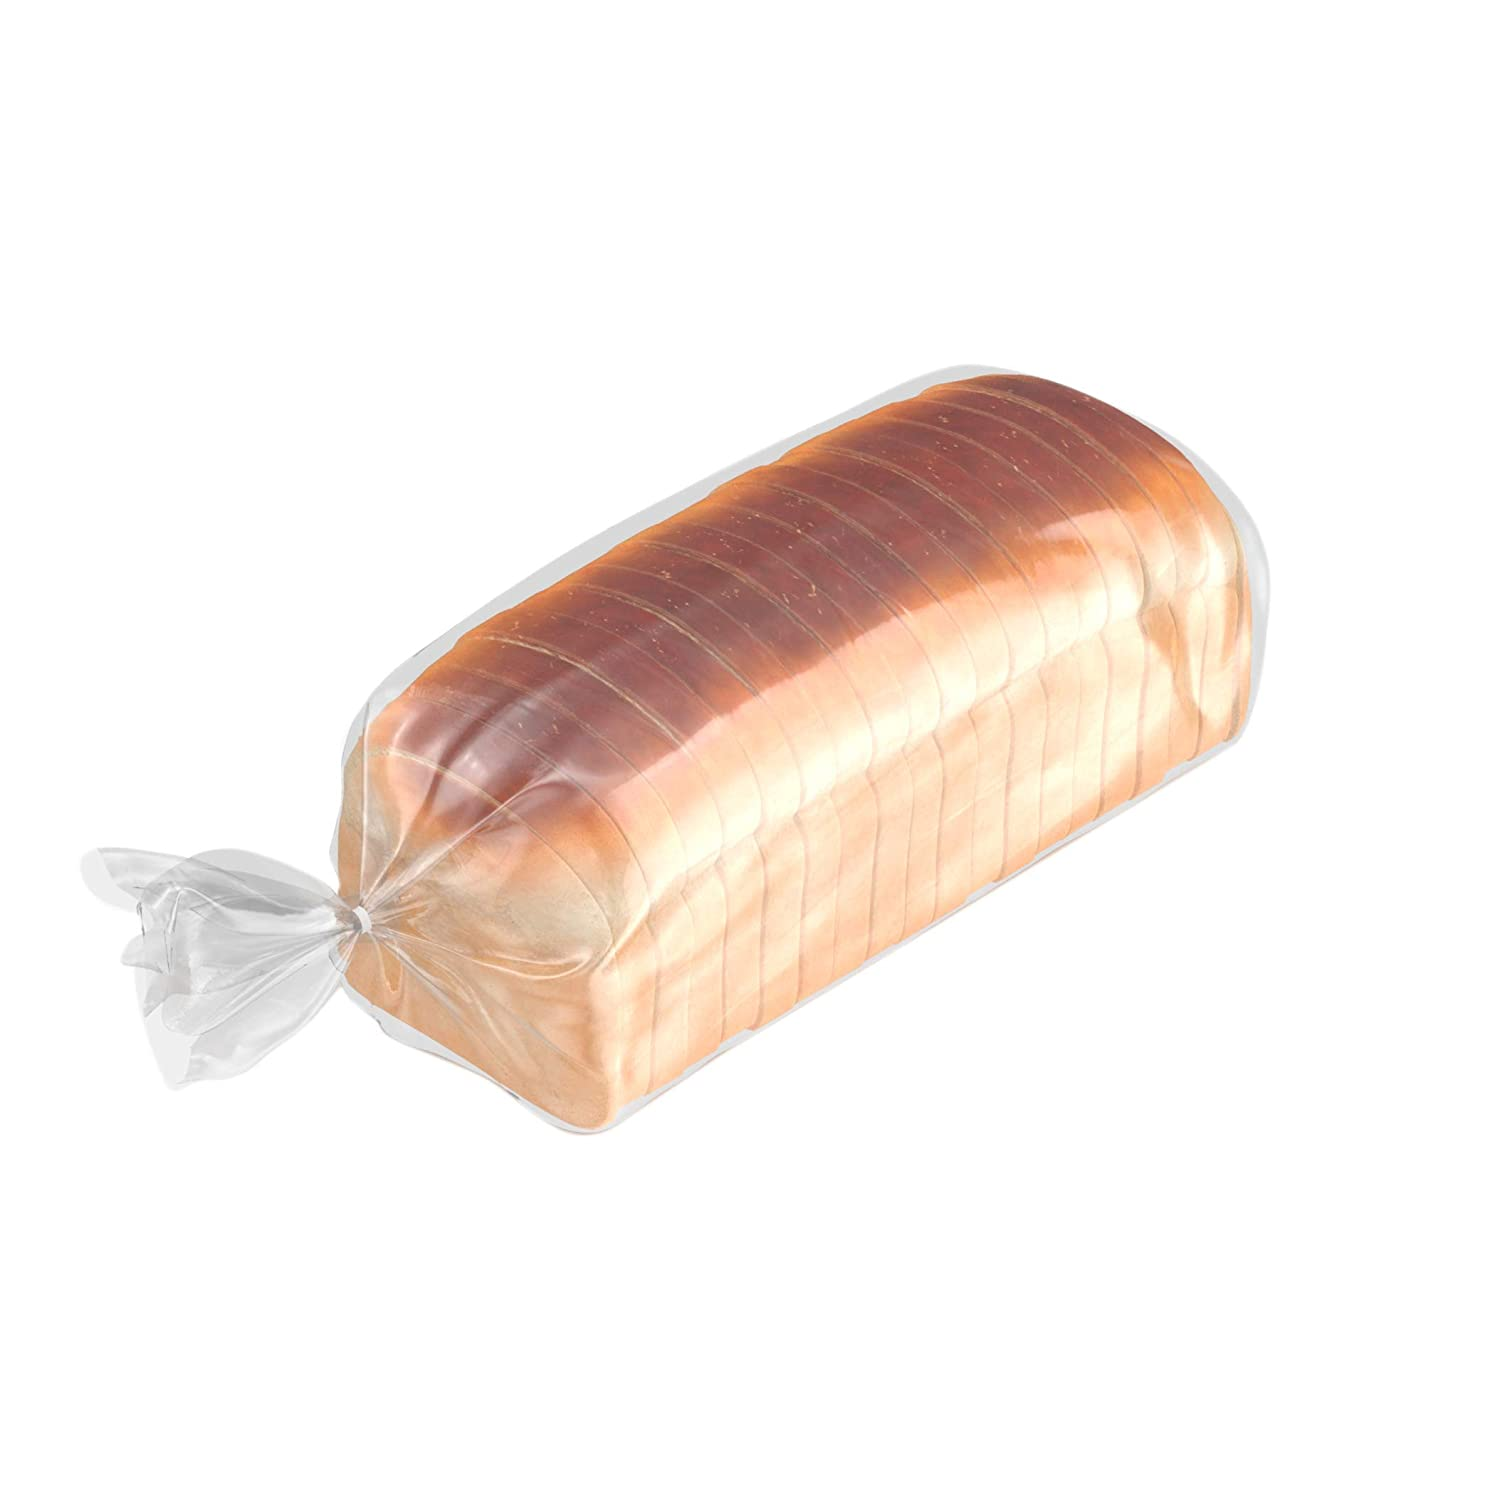 APQ Pack of 100 Poly Bakery Bread Bags 6 x 3 x 12. Ultra Thin Clear Gusseted Bags 6x3x12. 0.65 mil Thick. Polyethylene Bags for Home, Bakeries and Other Food Industry Businesses.